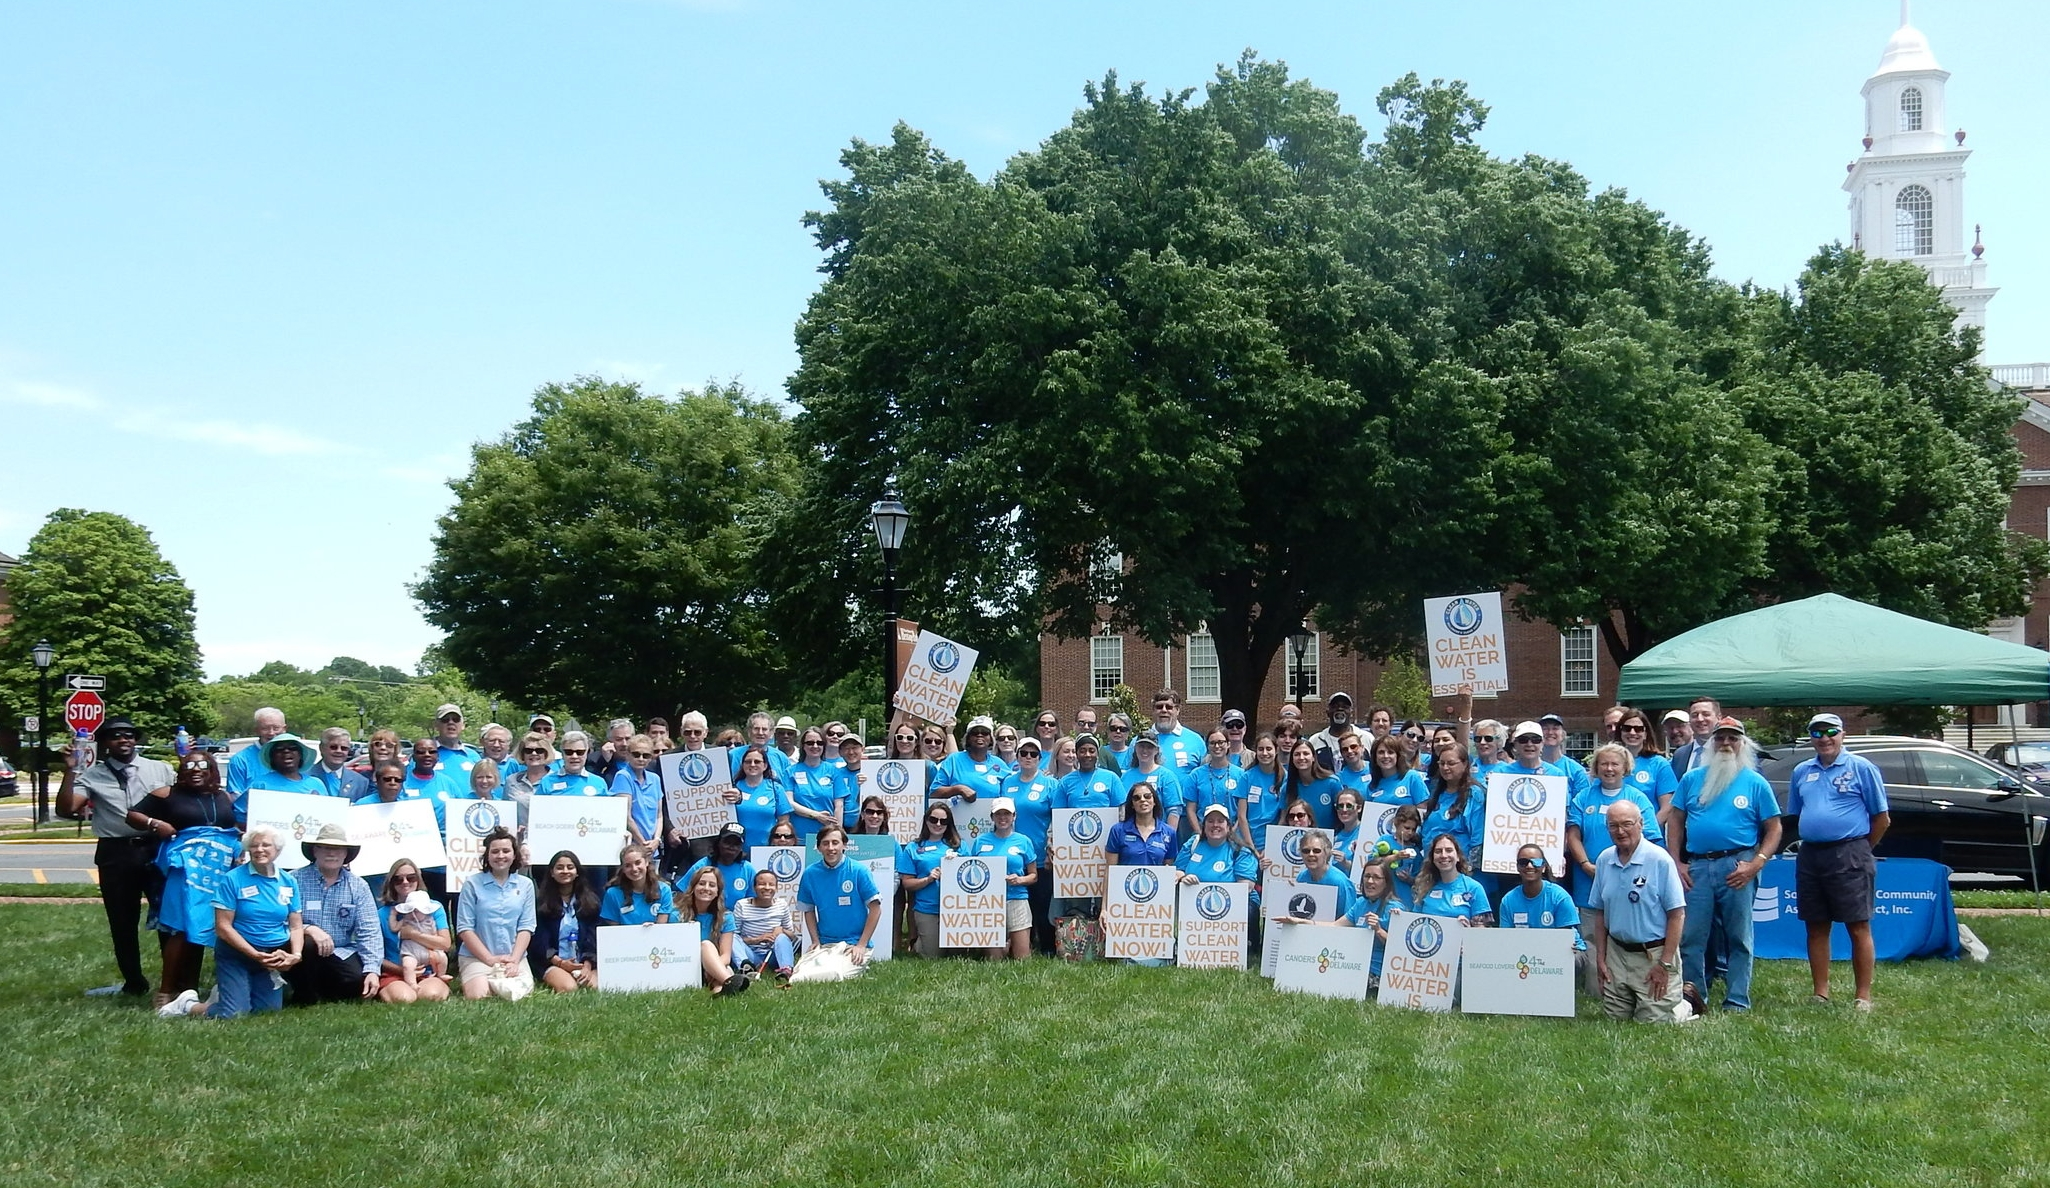 June 2018 Clean Water Rally in Wilmington, DE